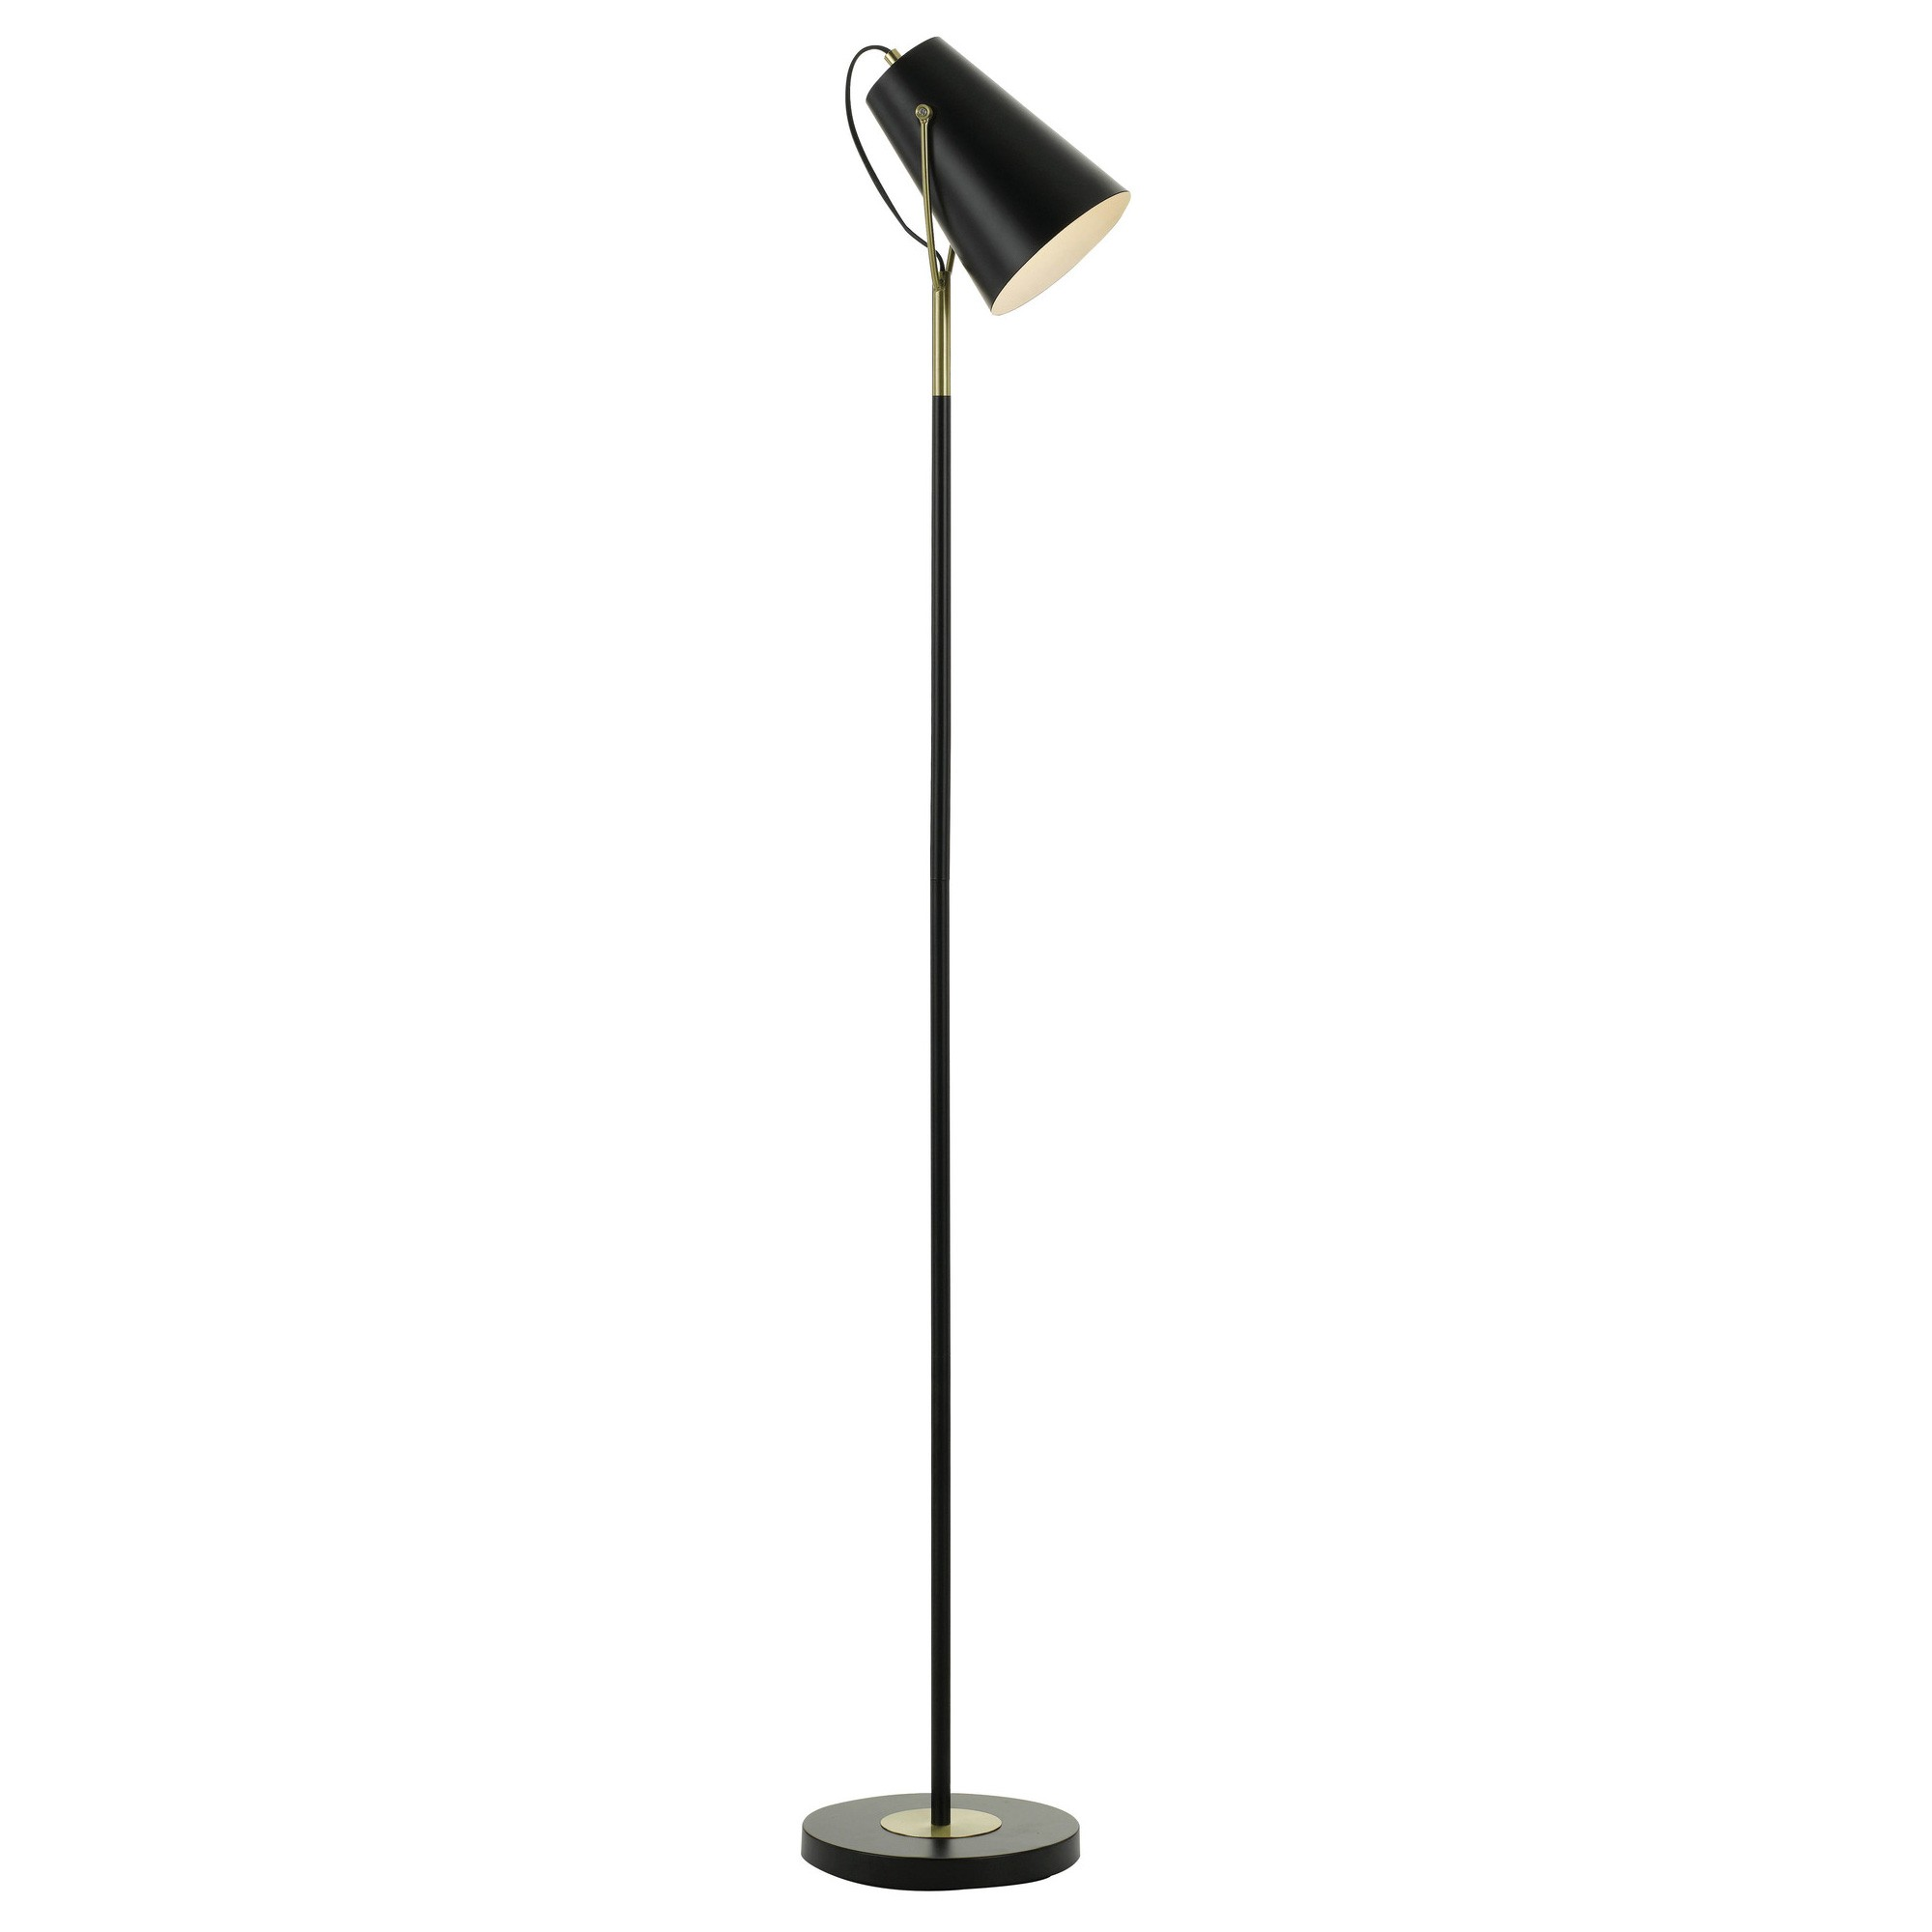 Cheviot Metal Floor Lamp, Black